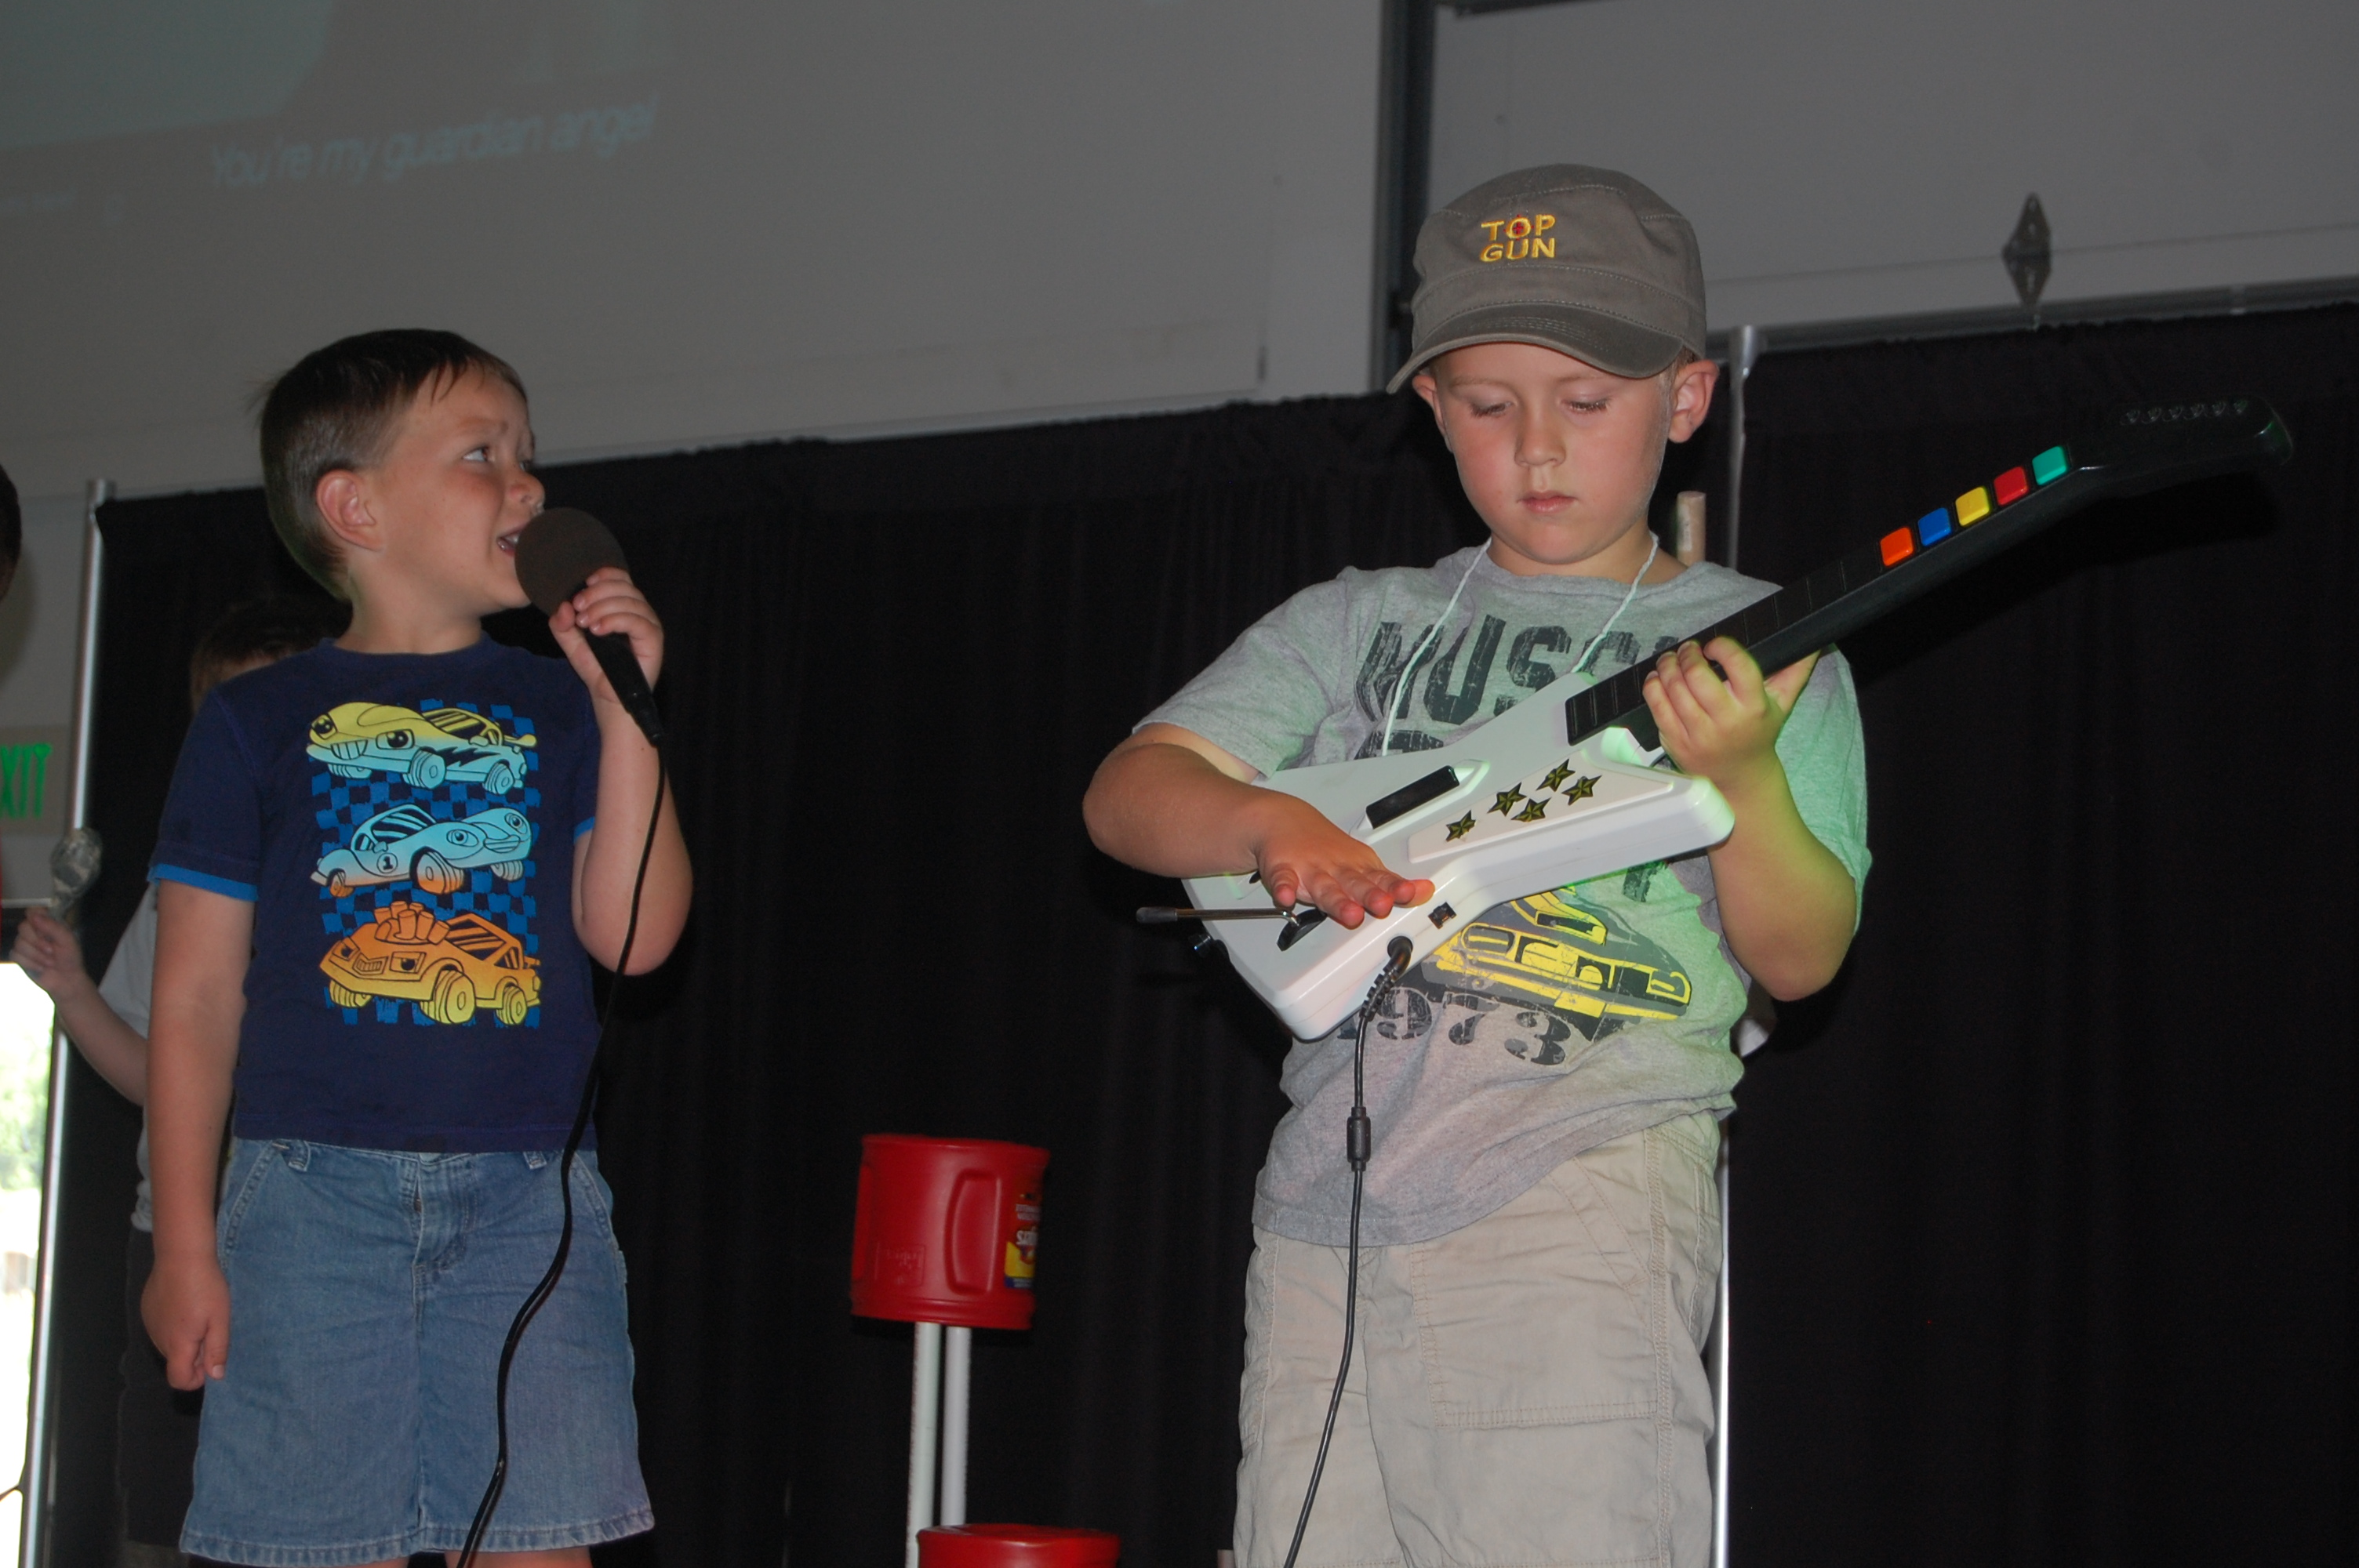 Cash and Tobyn performing on stage